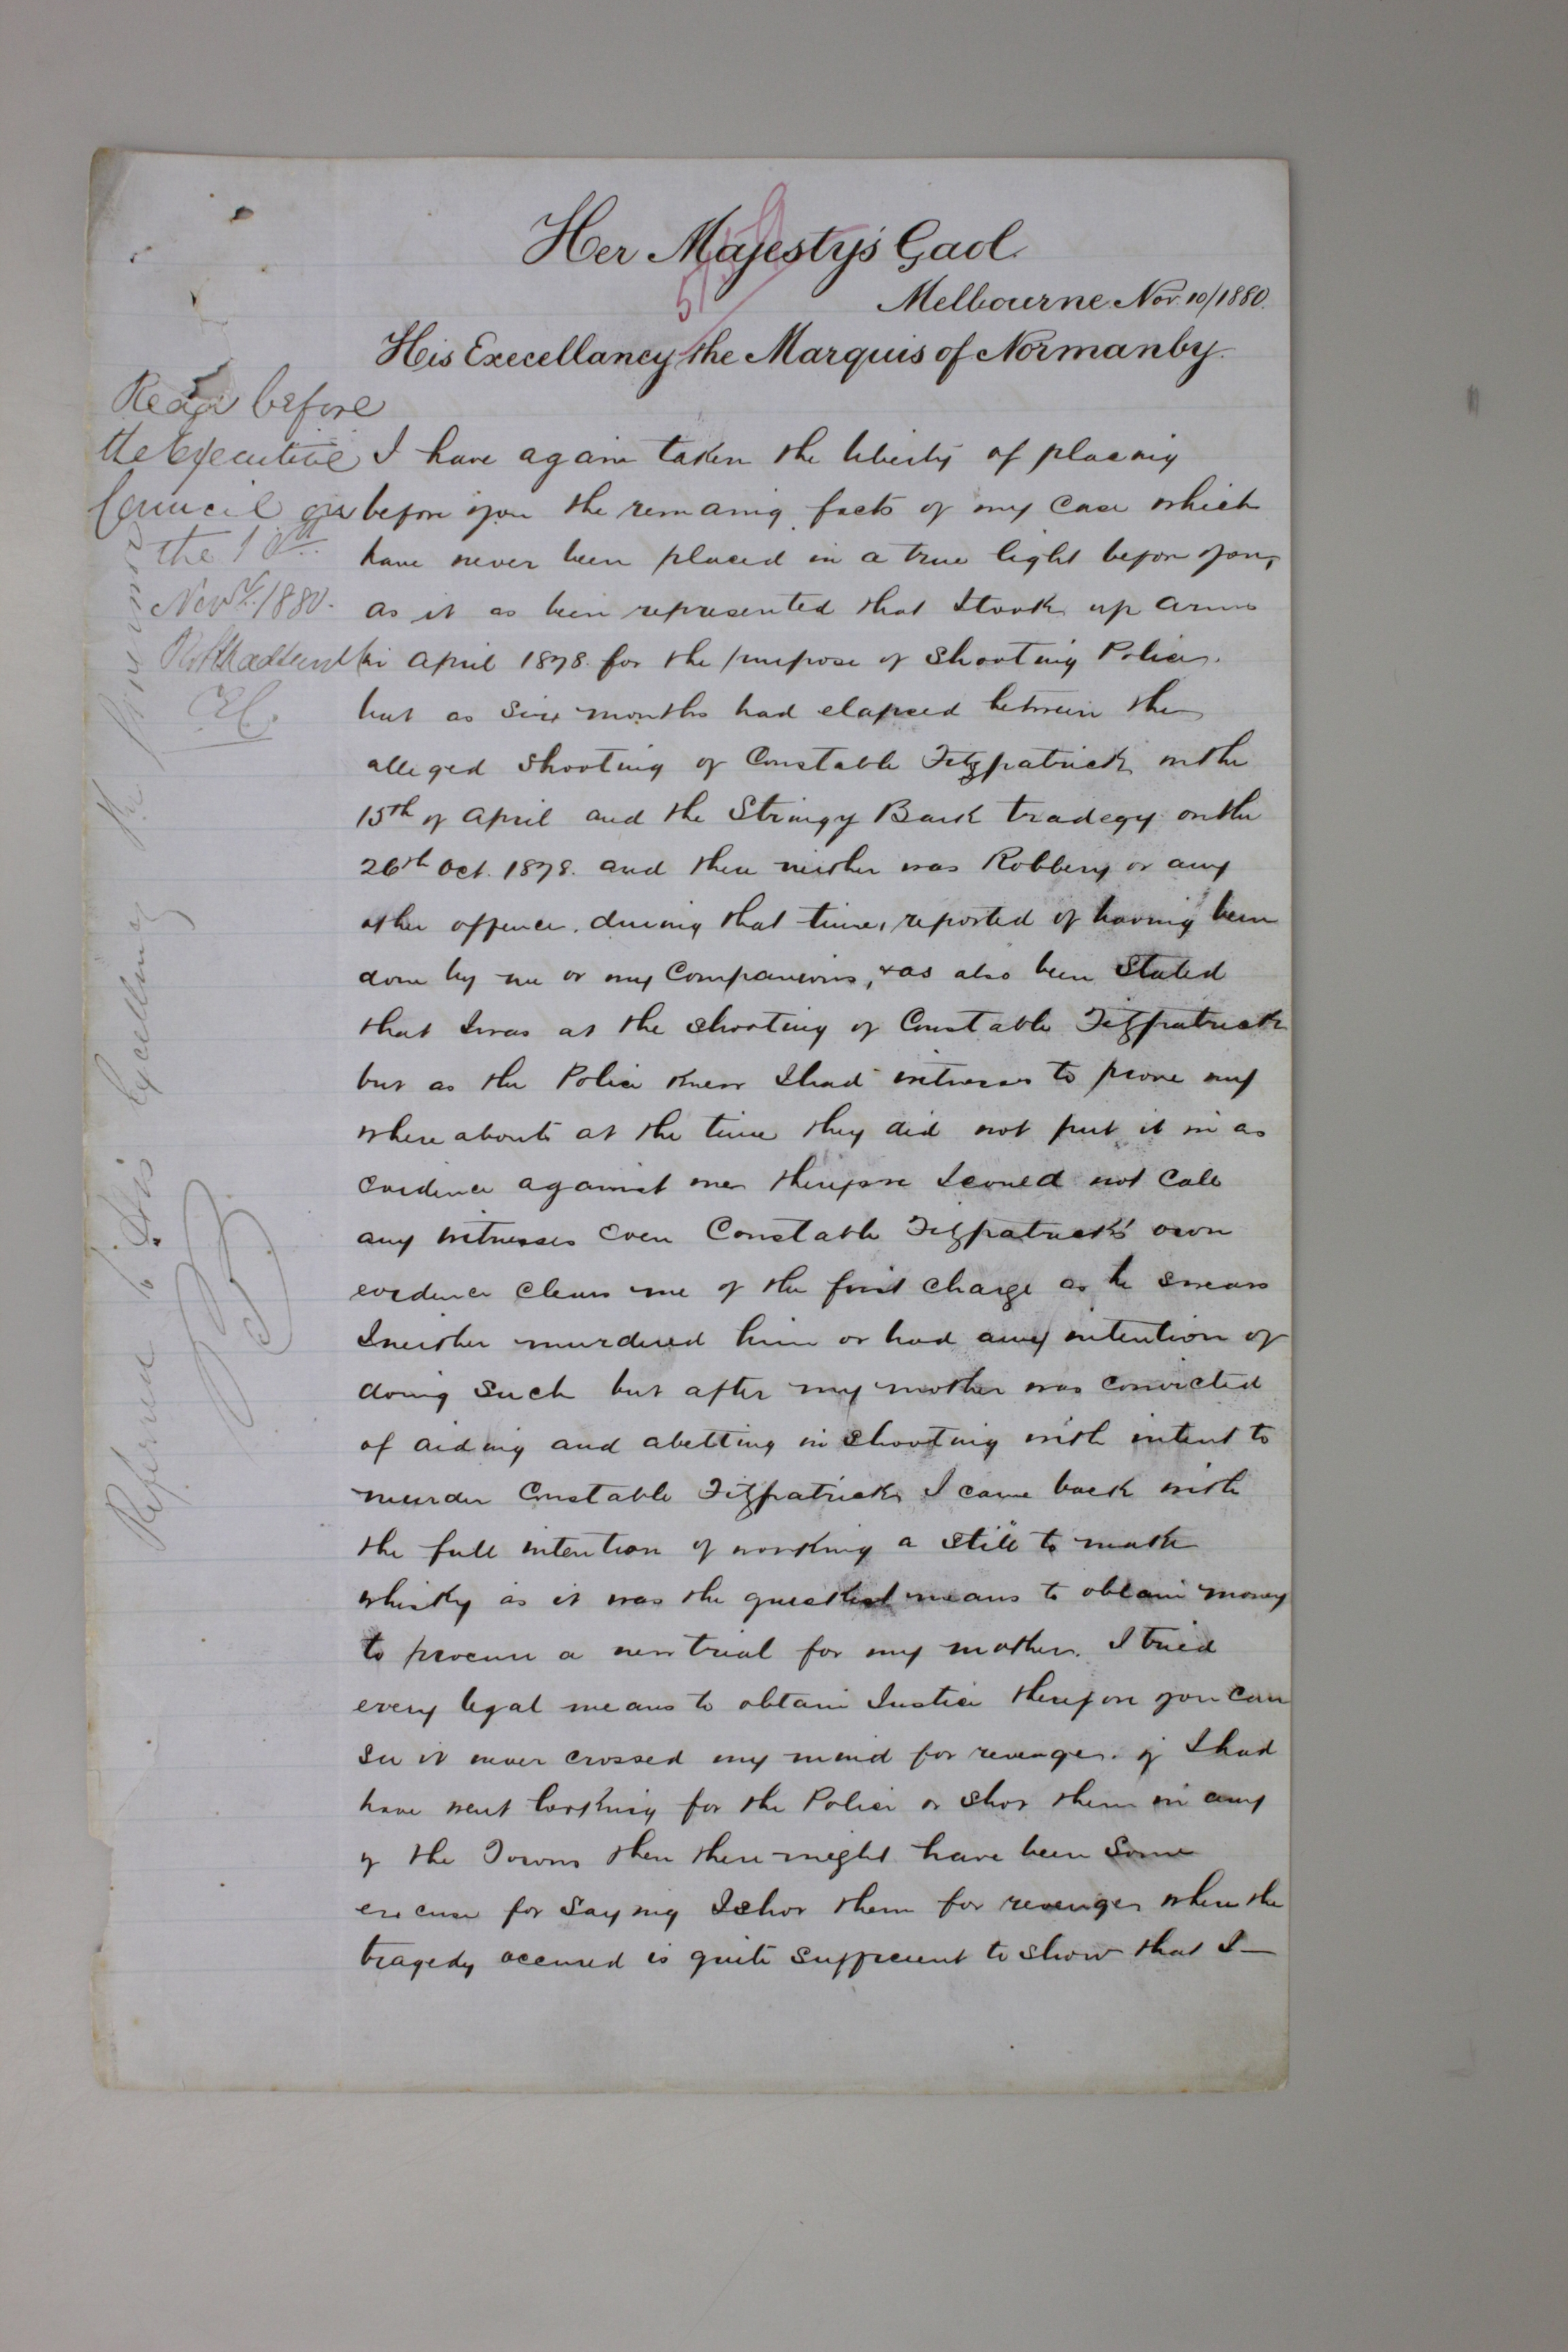 A photo of a hnadwritten letter